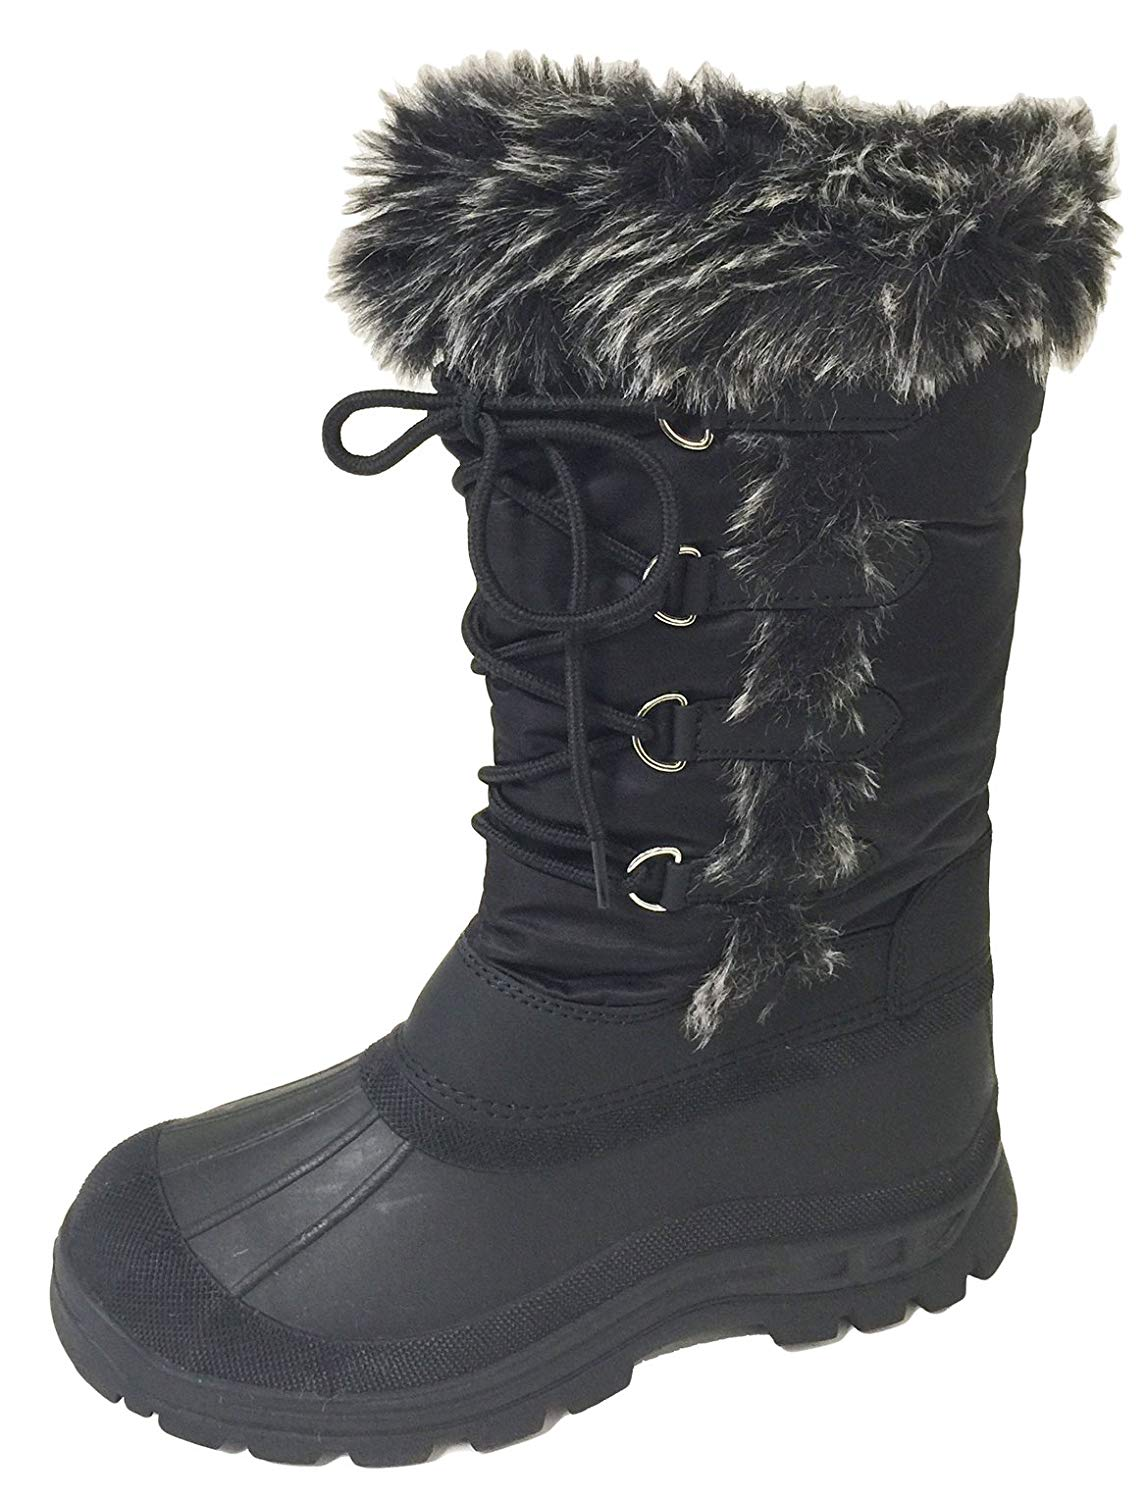 ef2b18d68545f Get Quotations · G4U-ICFZ Women s Winter Boots Snow Cold Weather Fur Lace  up Insulated Zipper Water Resistant